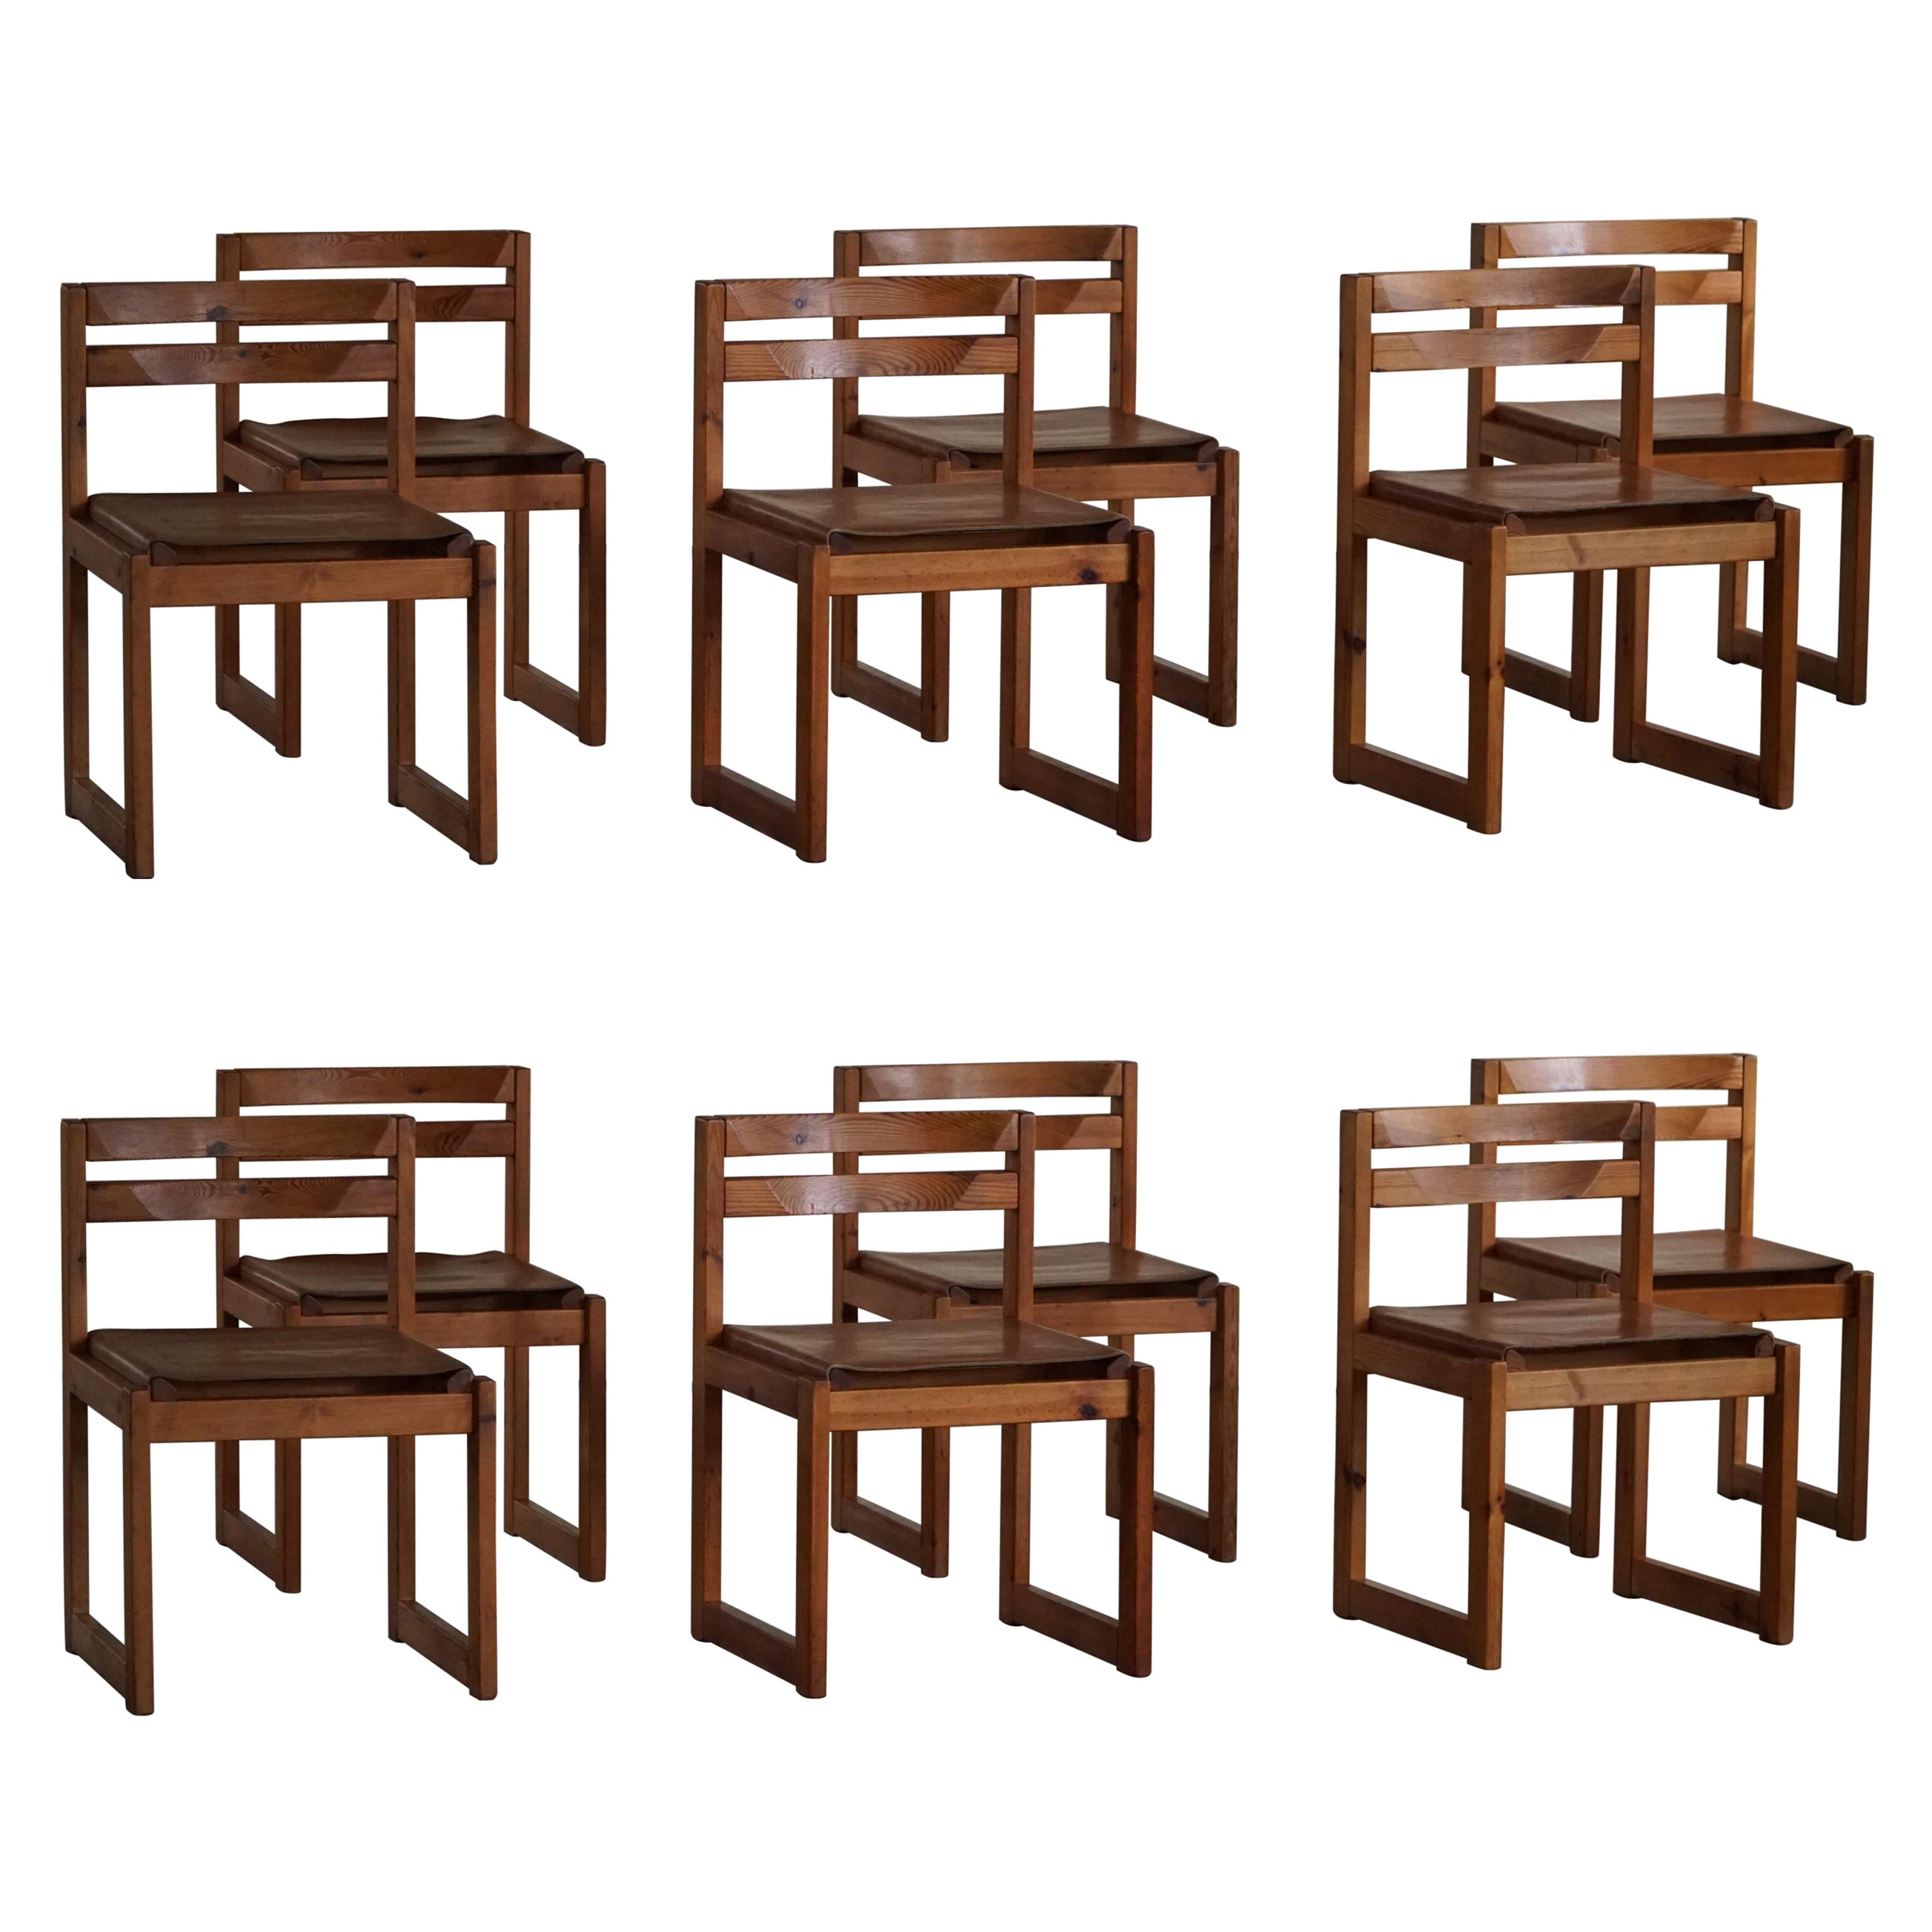 Set of 12, Danish Modern Dining Chairs in Pine and Leather, by Knud Færch, 1970s